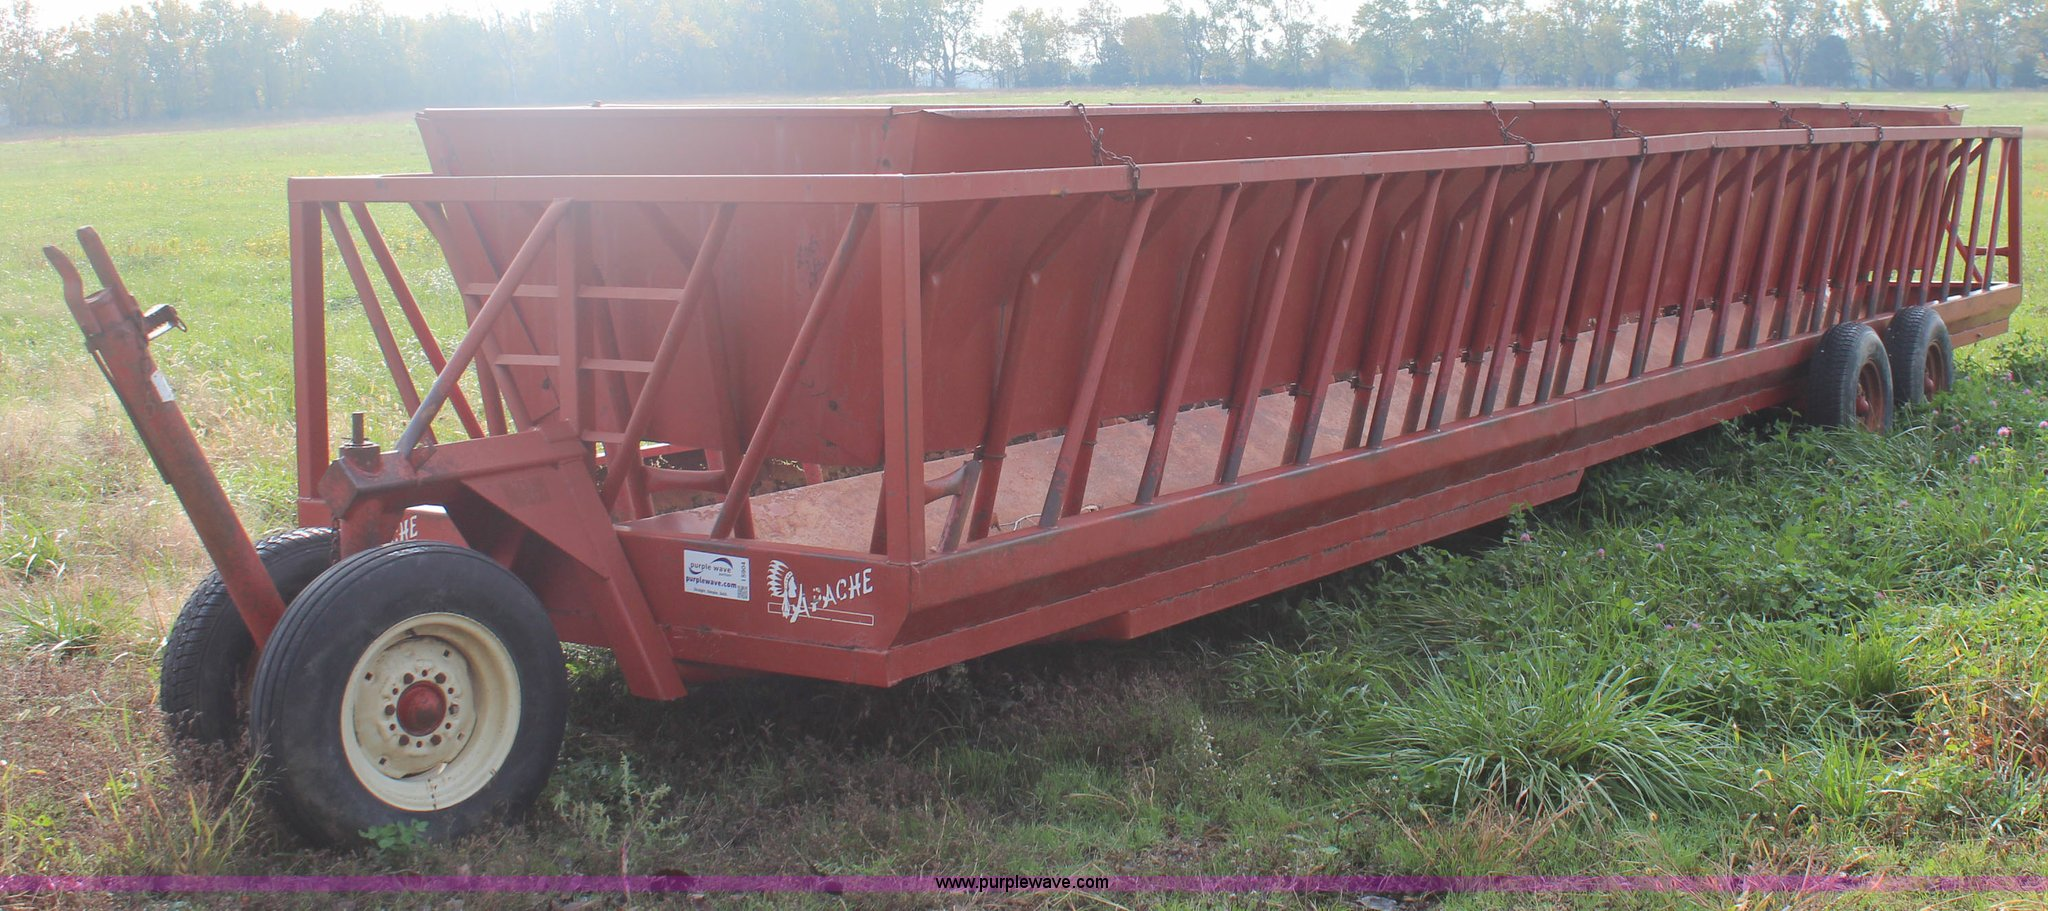 full in hay sold sep auction item feeder liberty new wagon bale size window